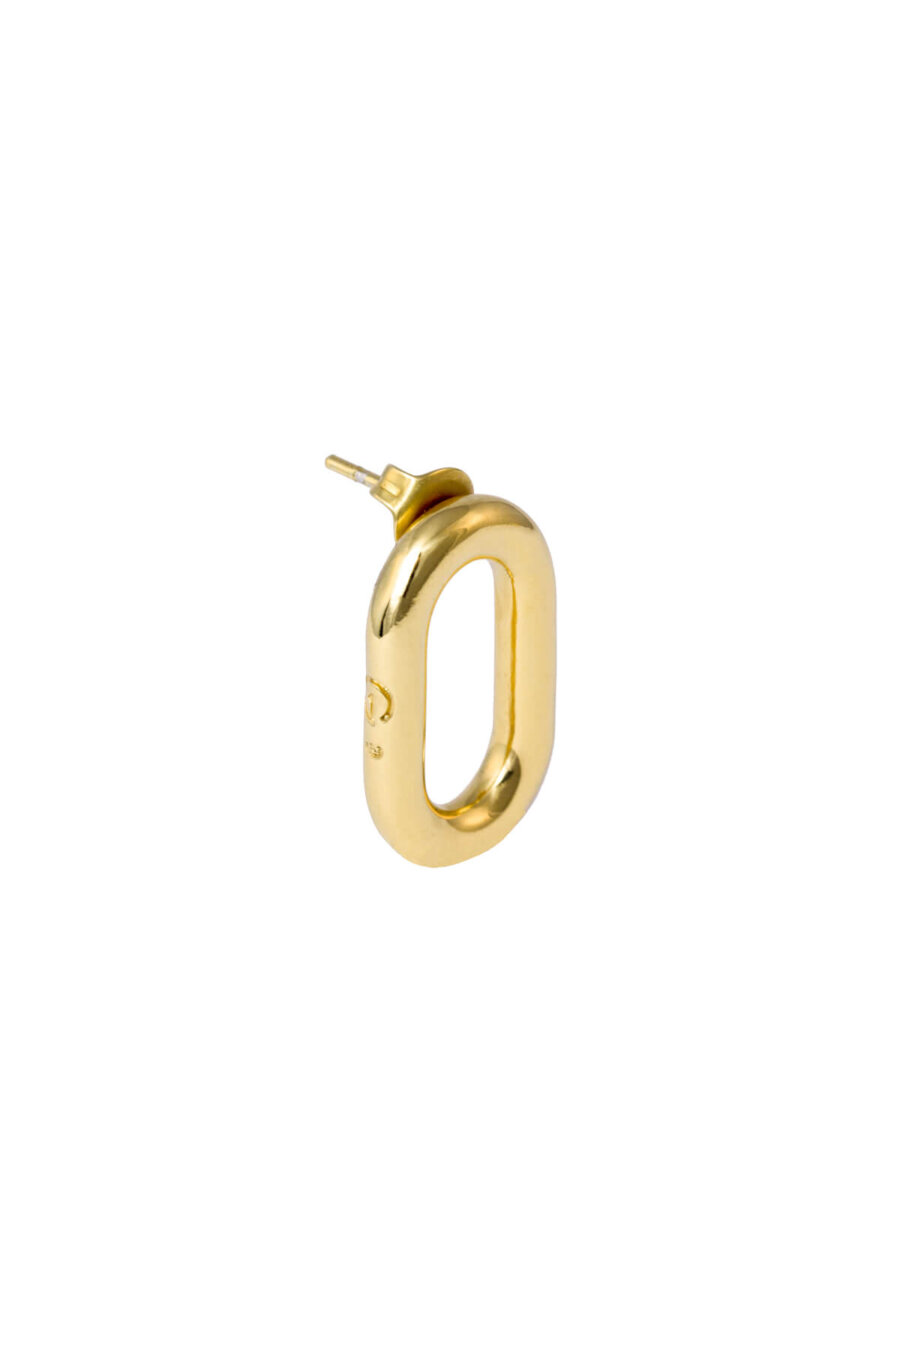 the-xl-frontal-link-earring-by-glenda-lopez-lateral